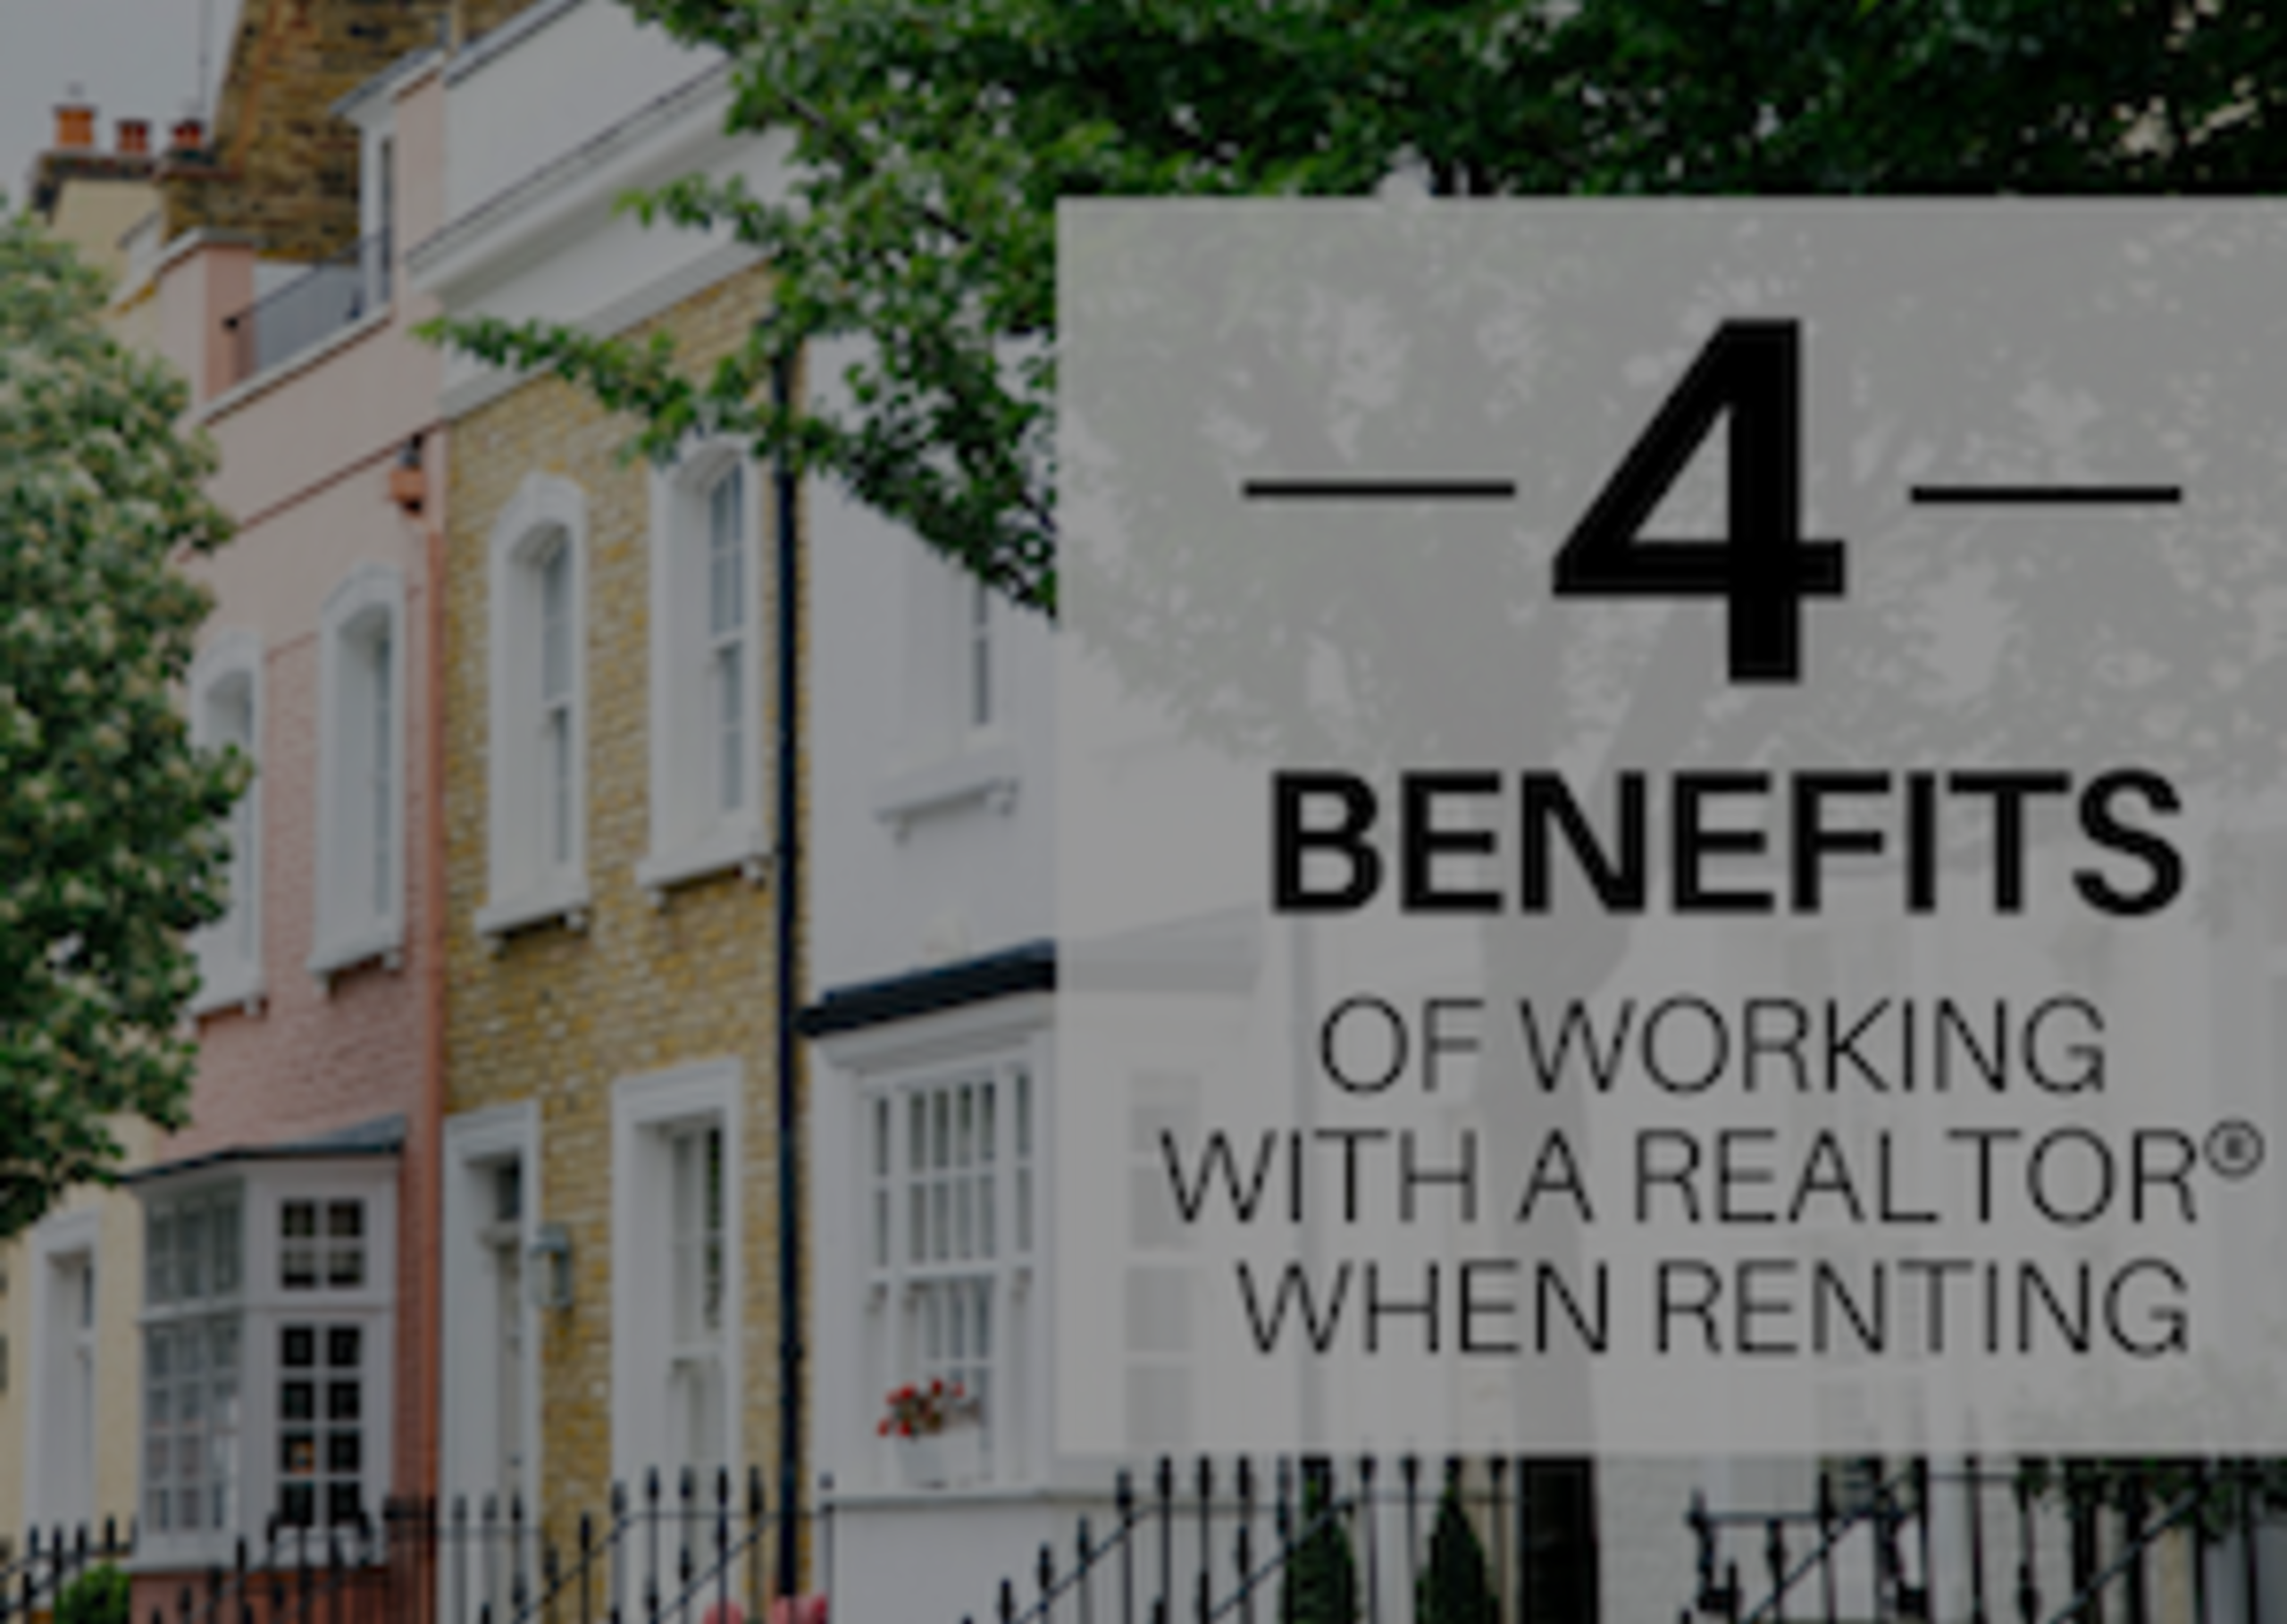 4 Benefits of Working with a REALTOR® when Renting